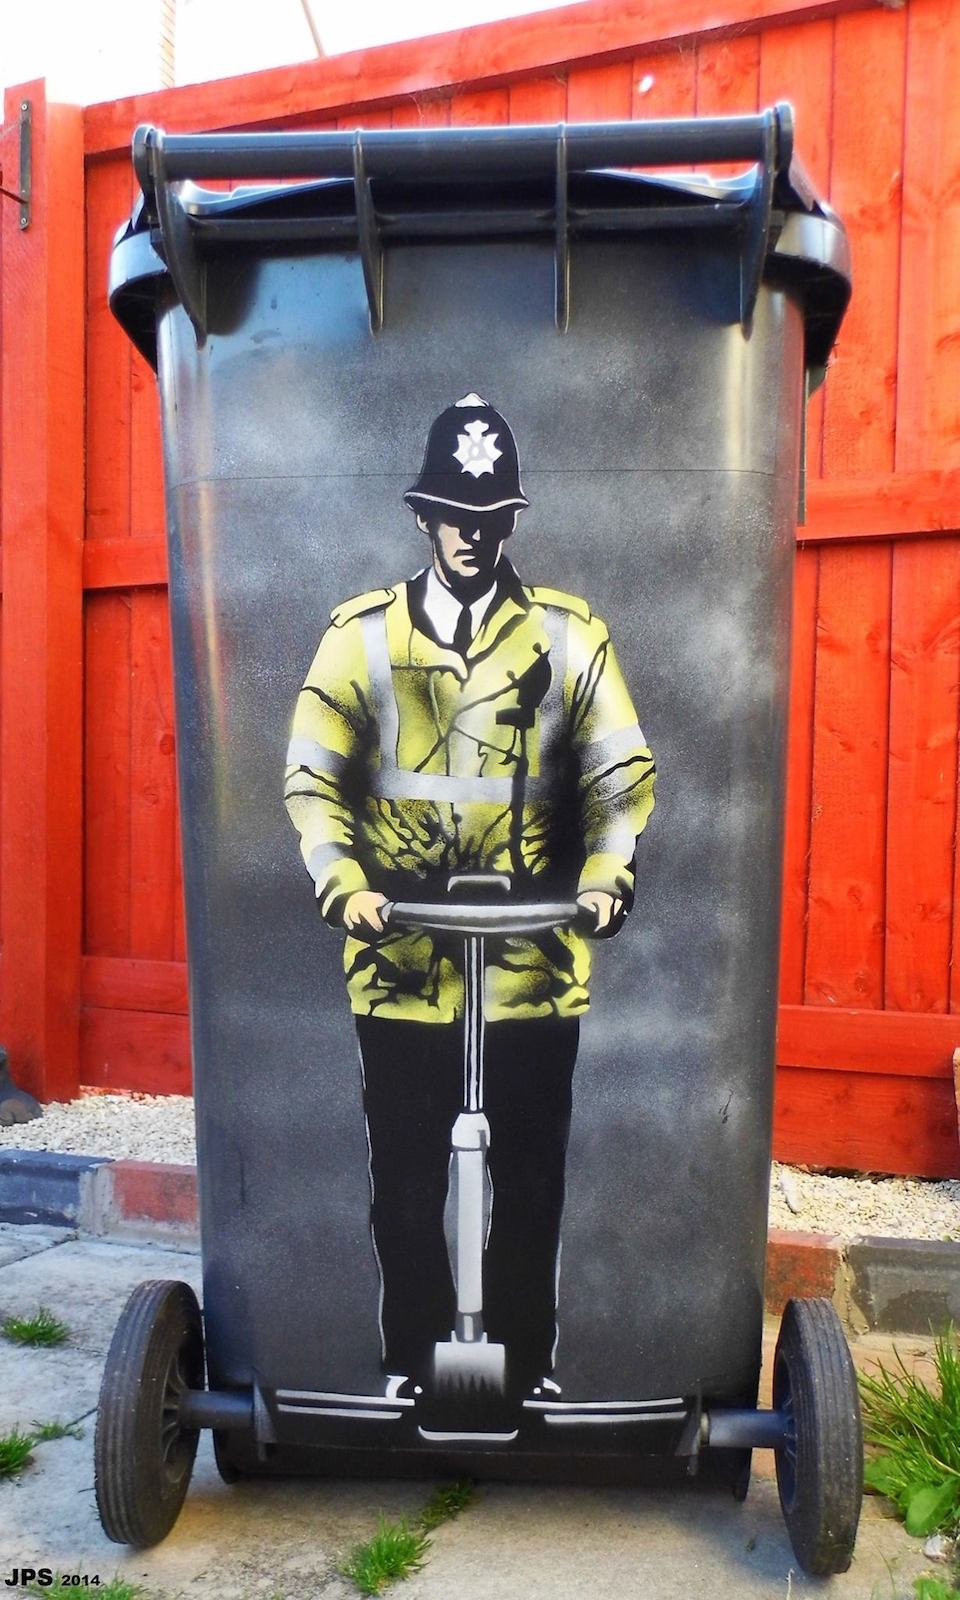 Street Art by JPS 0390349